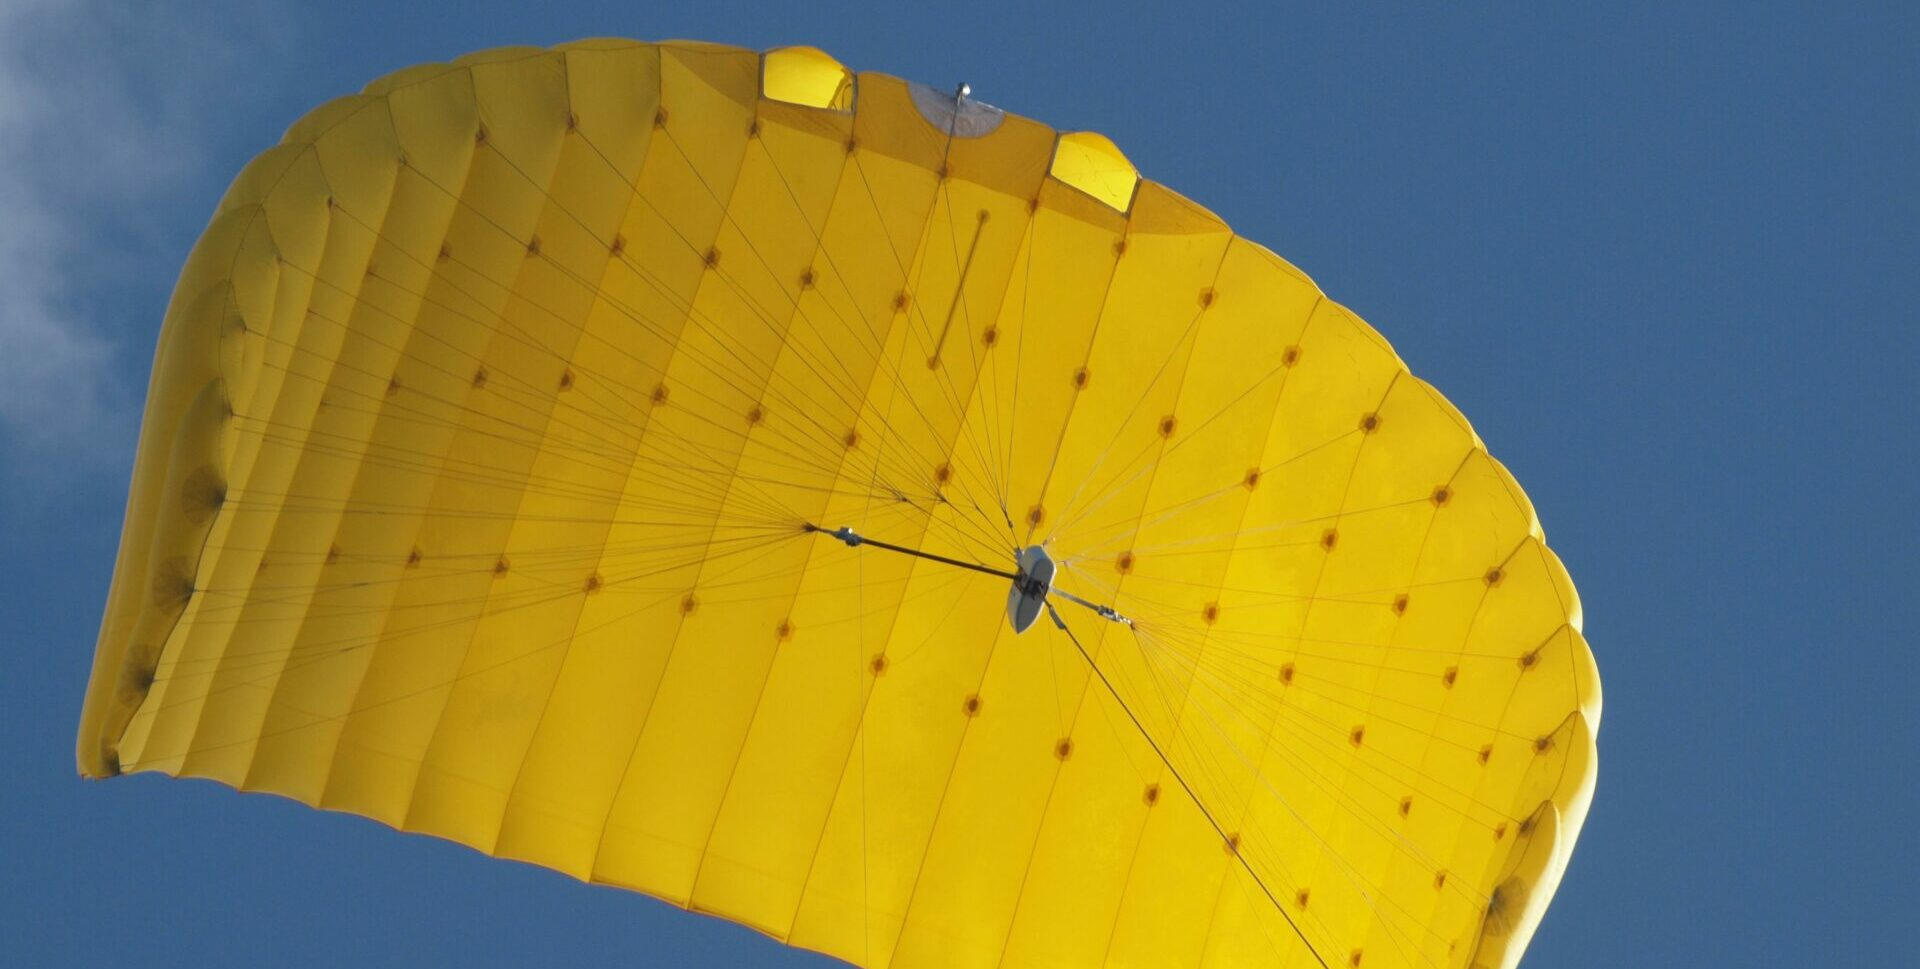 SkySails Group Kite made of yellow fabric in flight